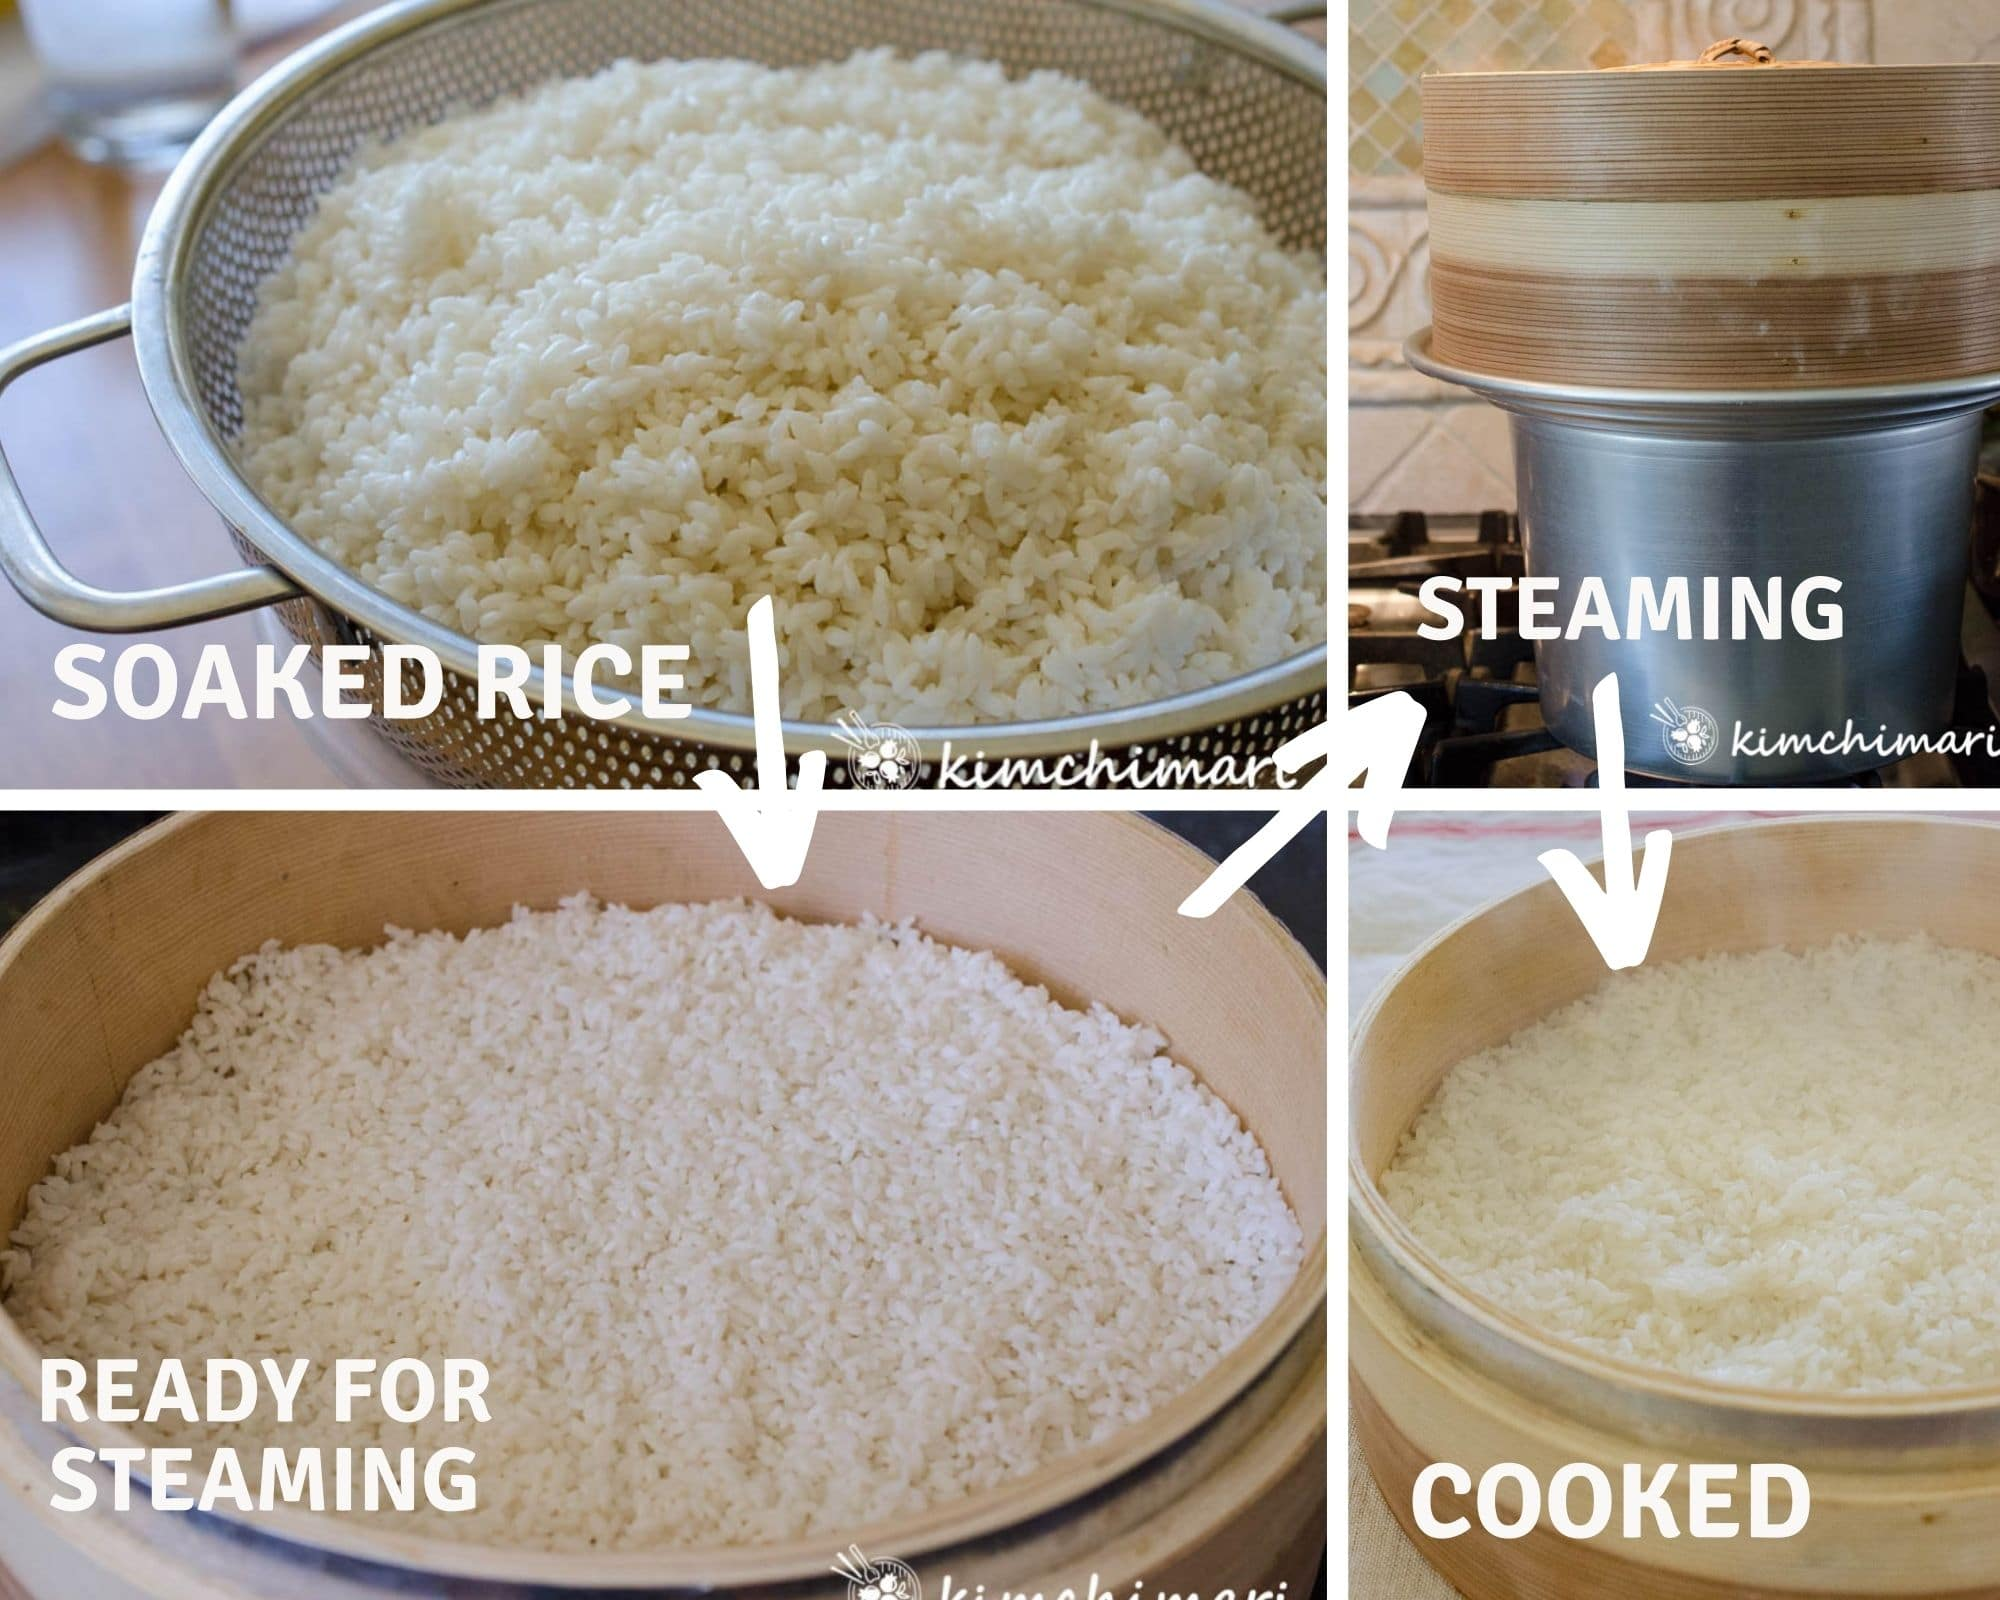 4 step by step image for soaking, steaming rice in bamboo steamer